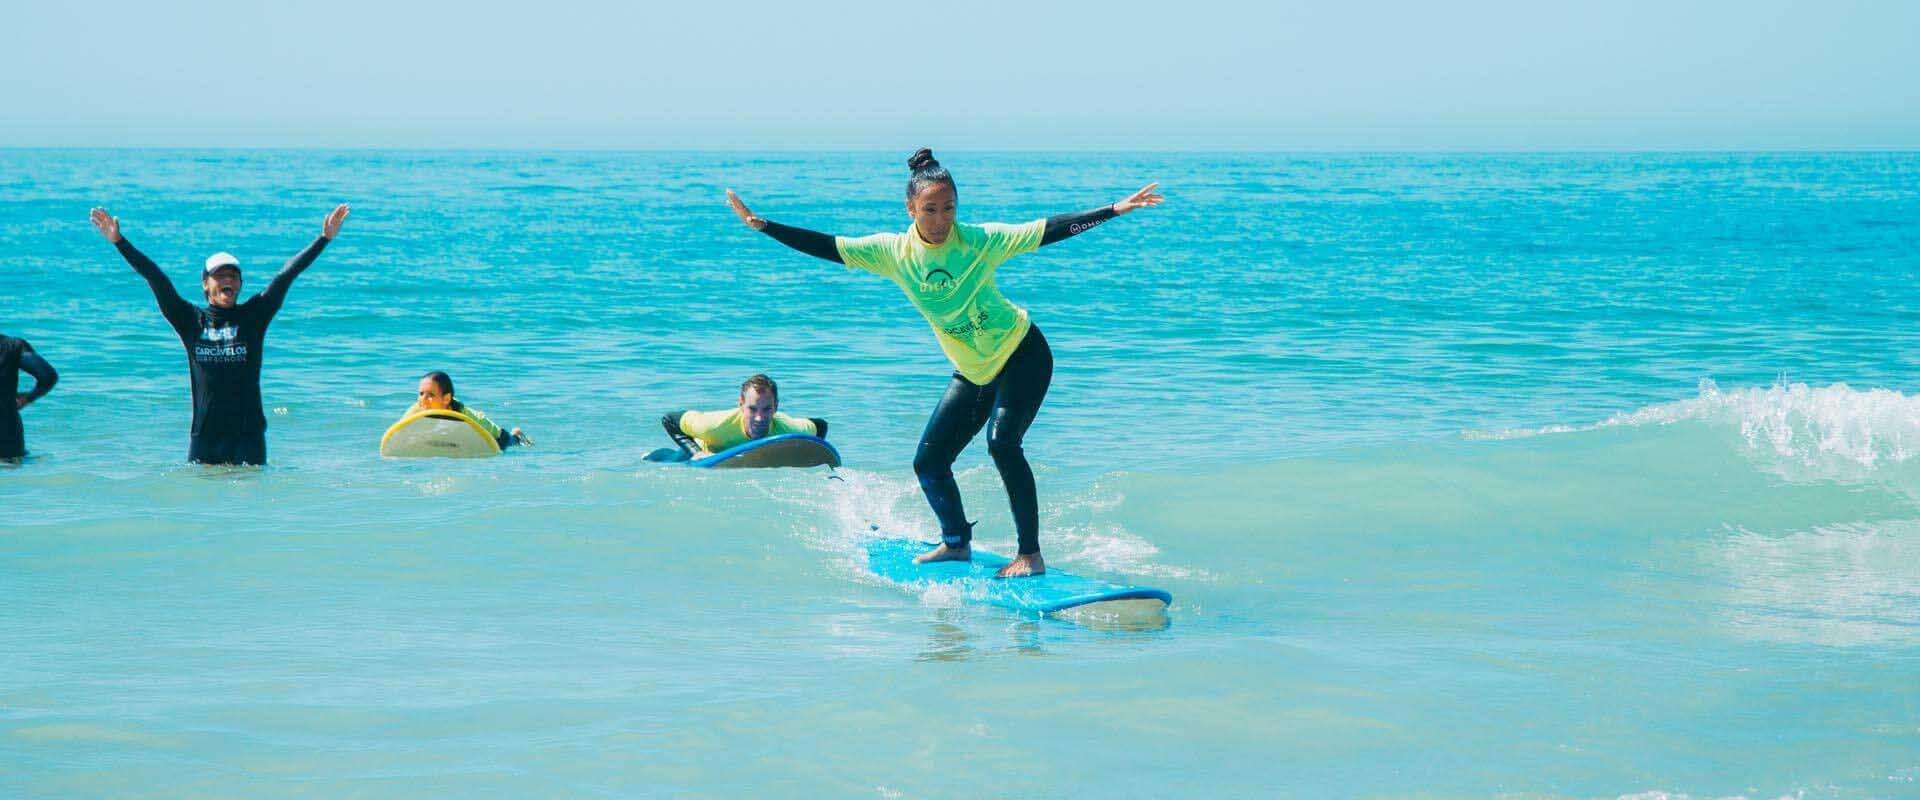 Carcavelos Surf School - our students foto 5